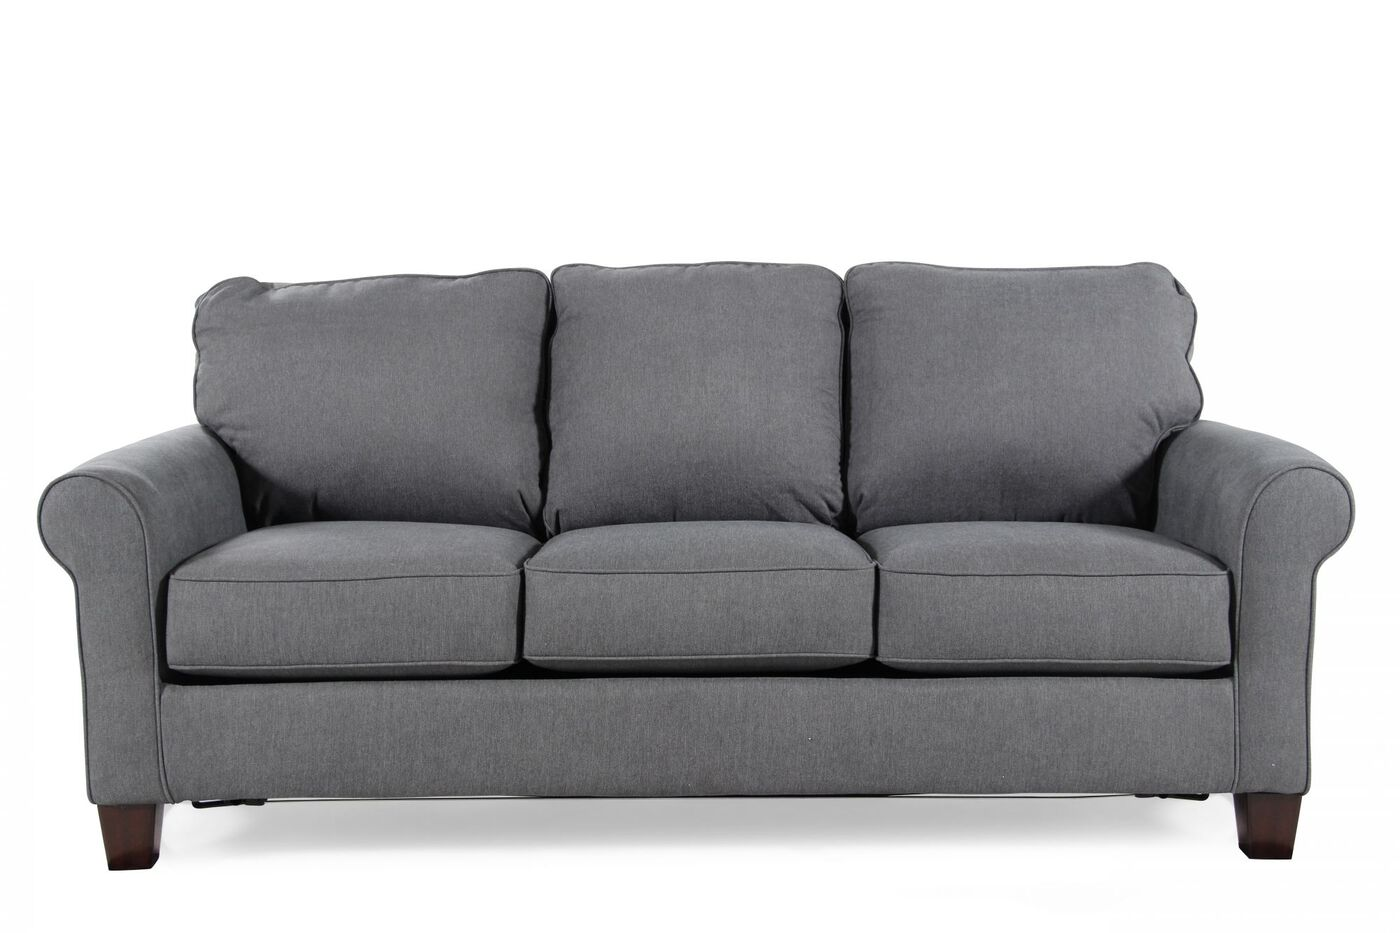 contemporary queen sleeper sofa in denim blue mathis brothers furniture. Black Bedroom Furniture Sets. Home Design Ideas